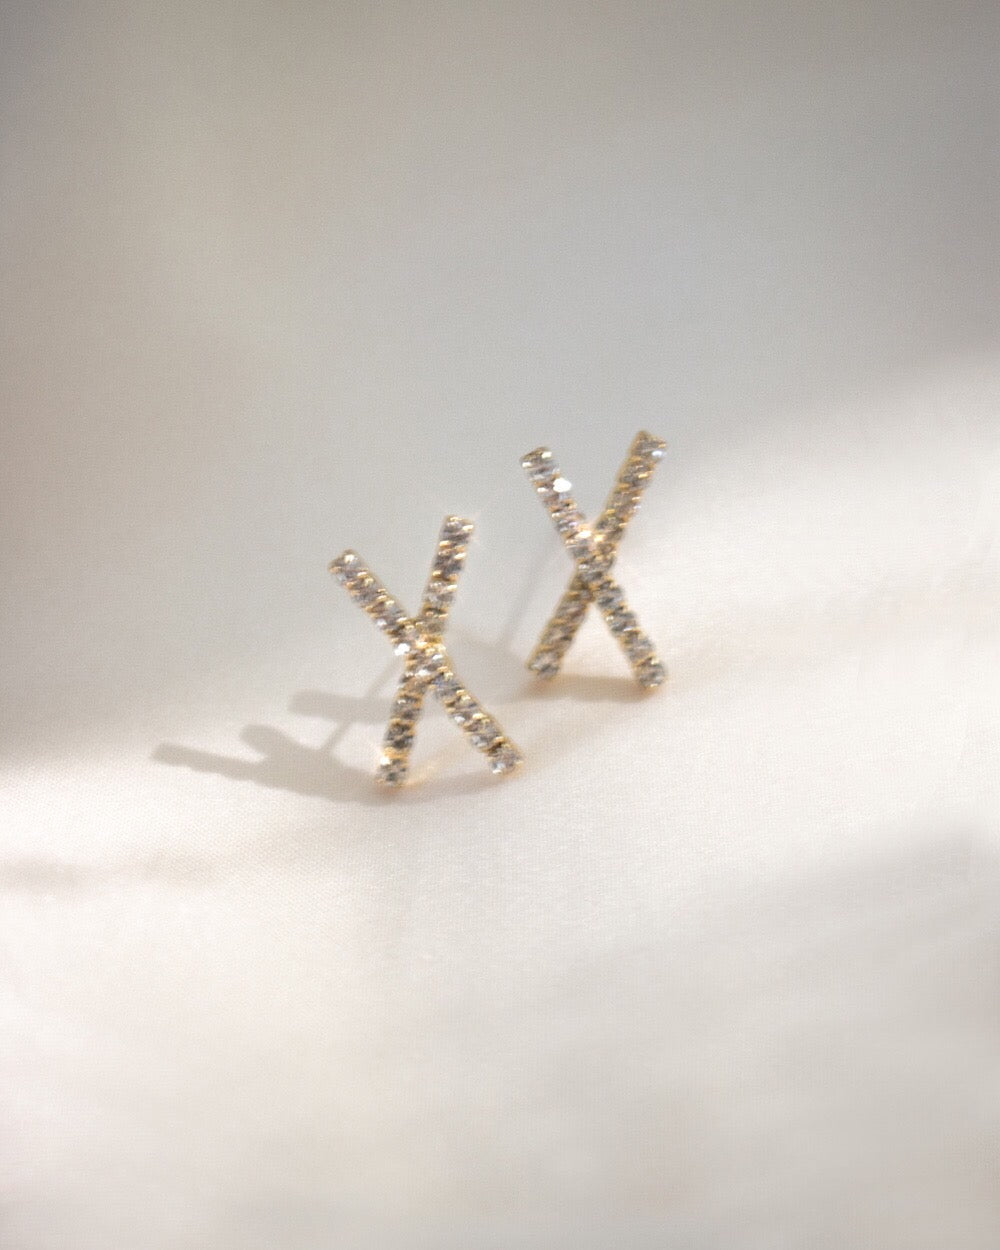 X shape ear studs encrusted with sparkly rhinestones - The Hexad